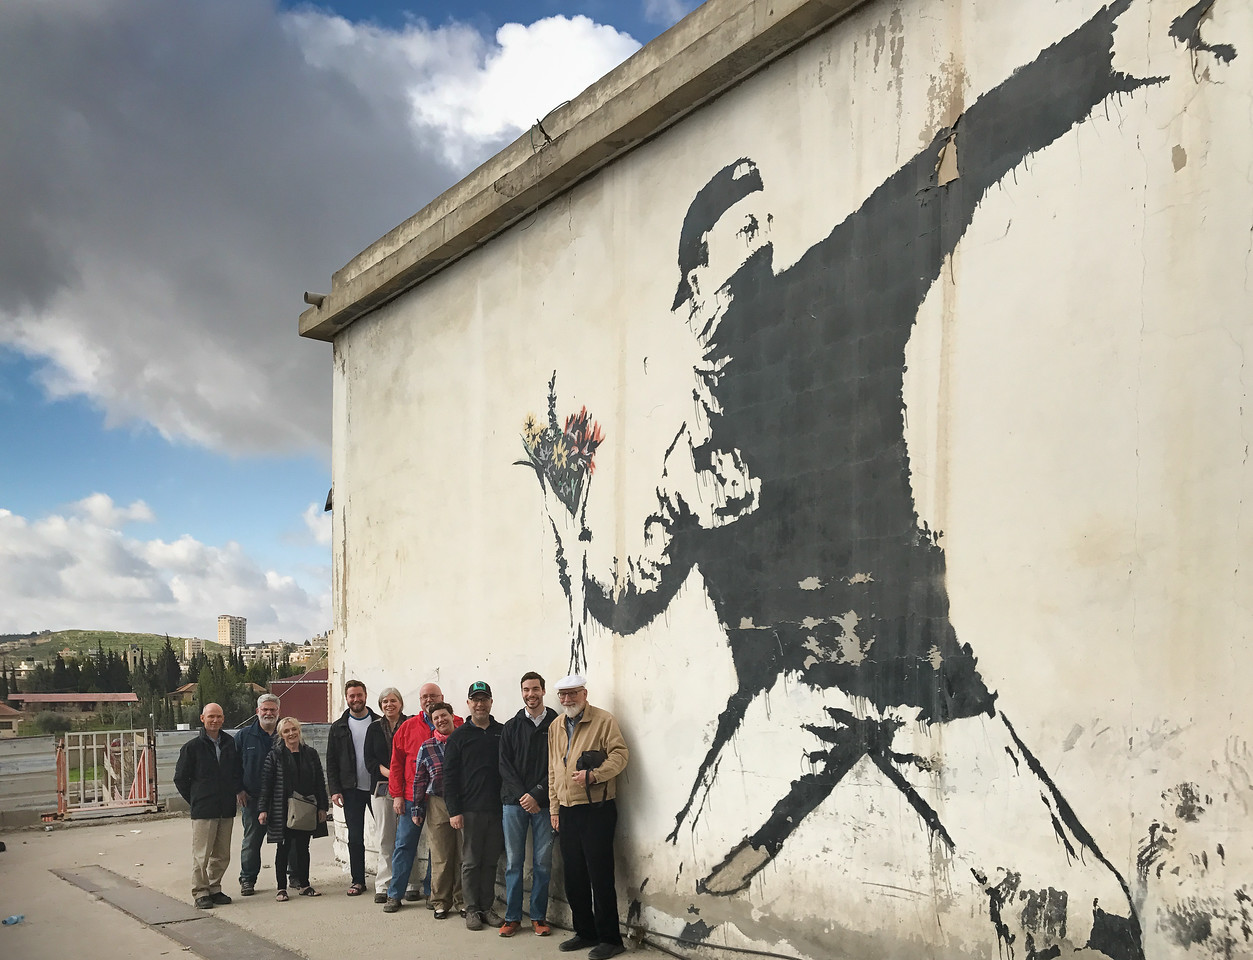 Separation wall with Banksy graffiti. and our tour group